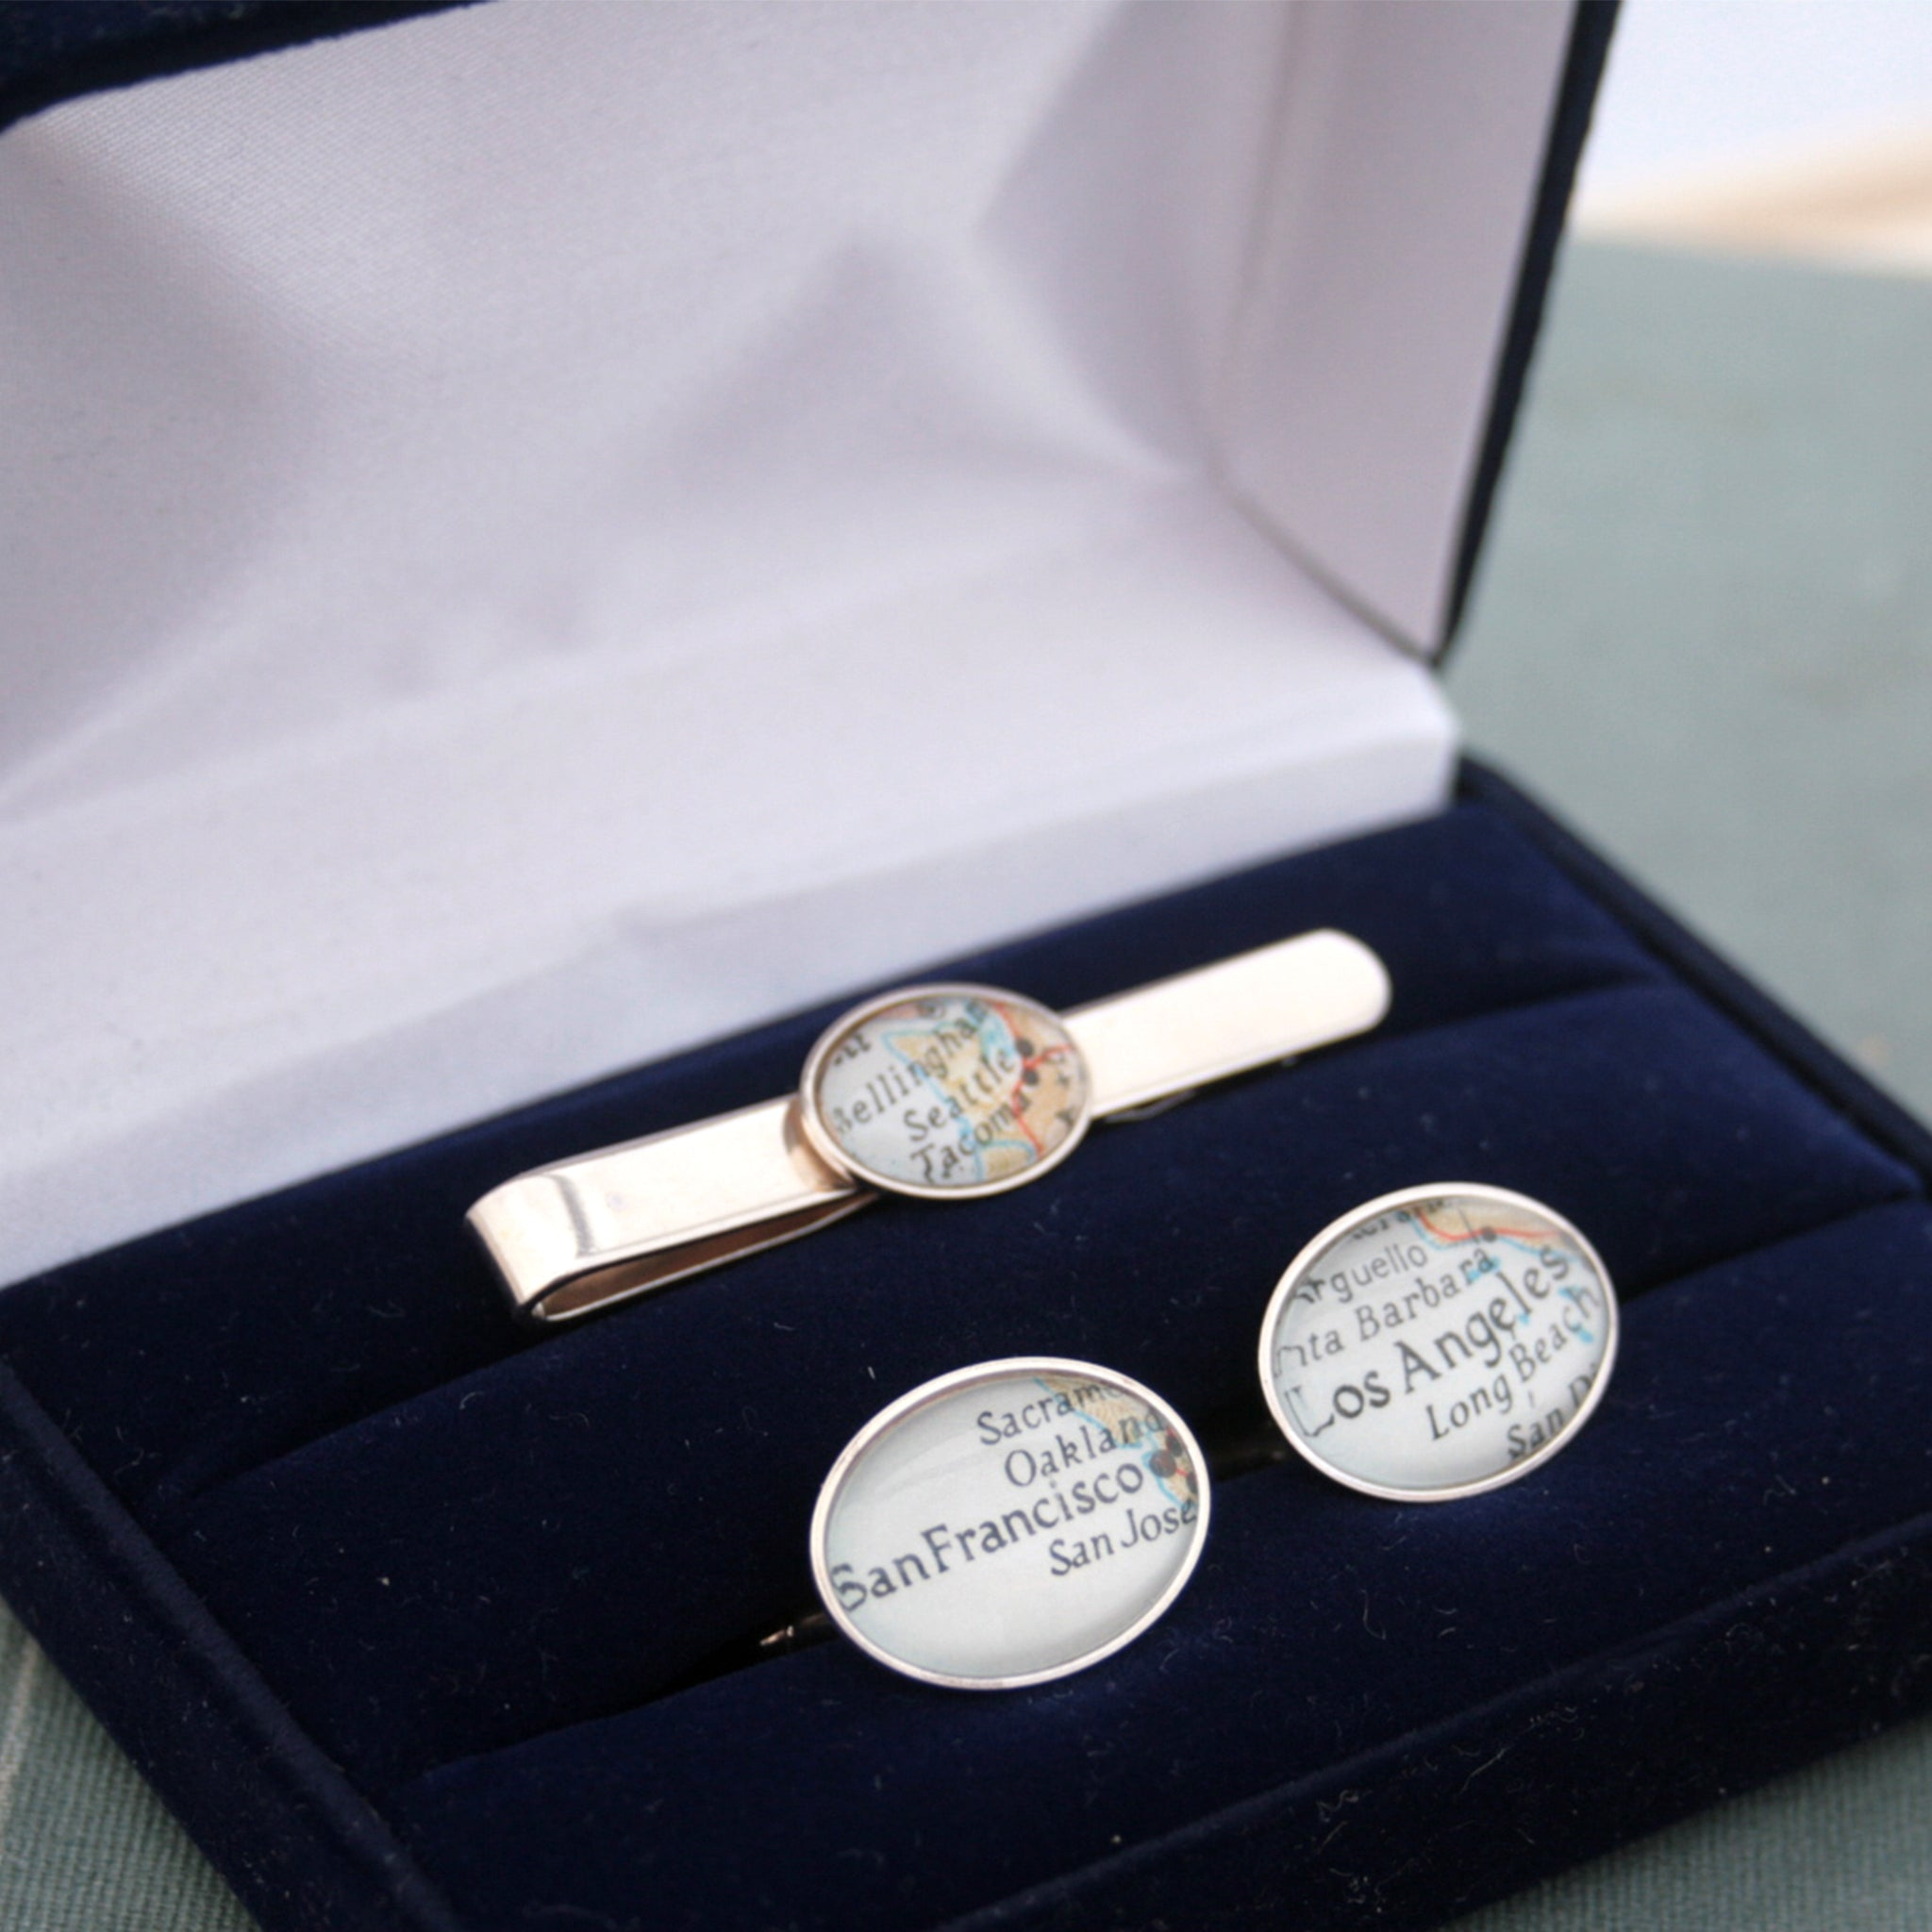 Sterling Silver Tie Clip and Cufflinks set featuring custom map locations in a blue presentation box